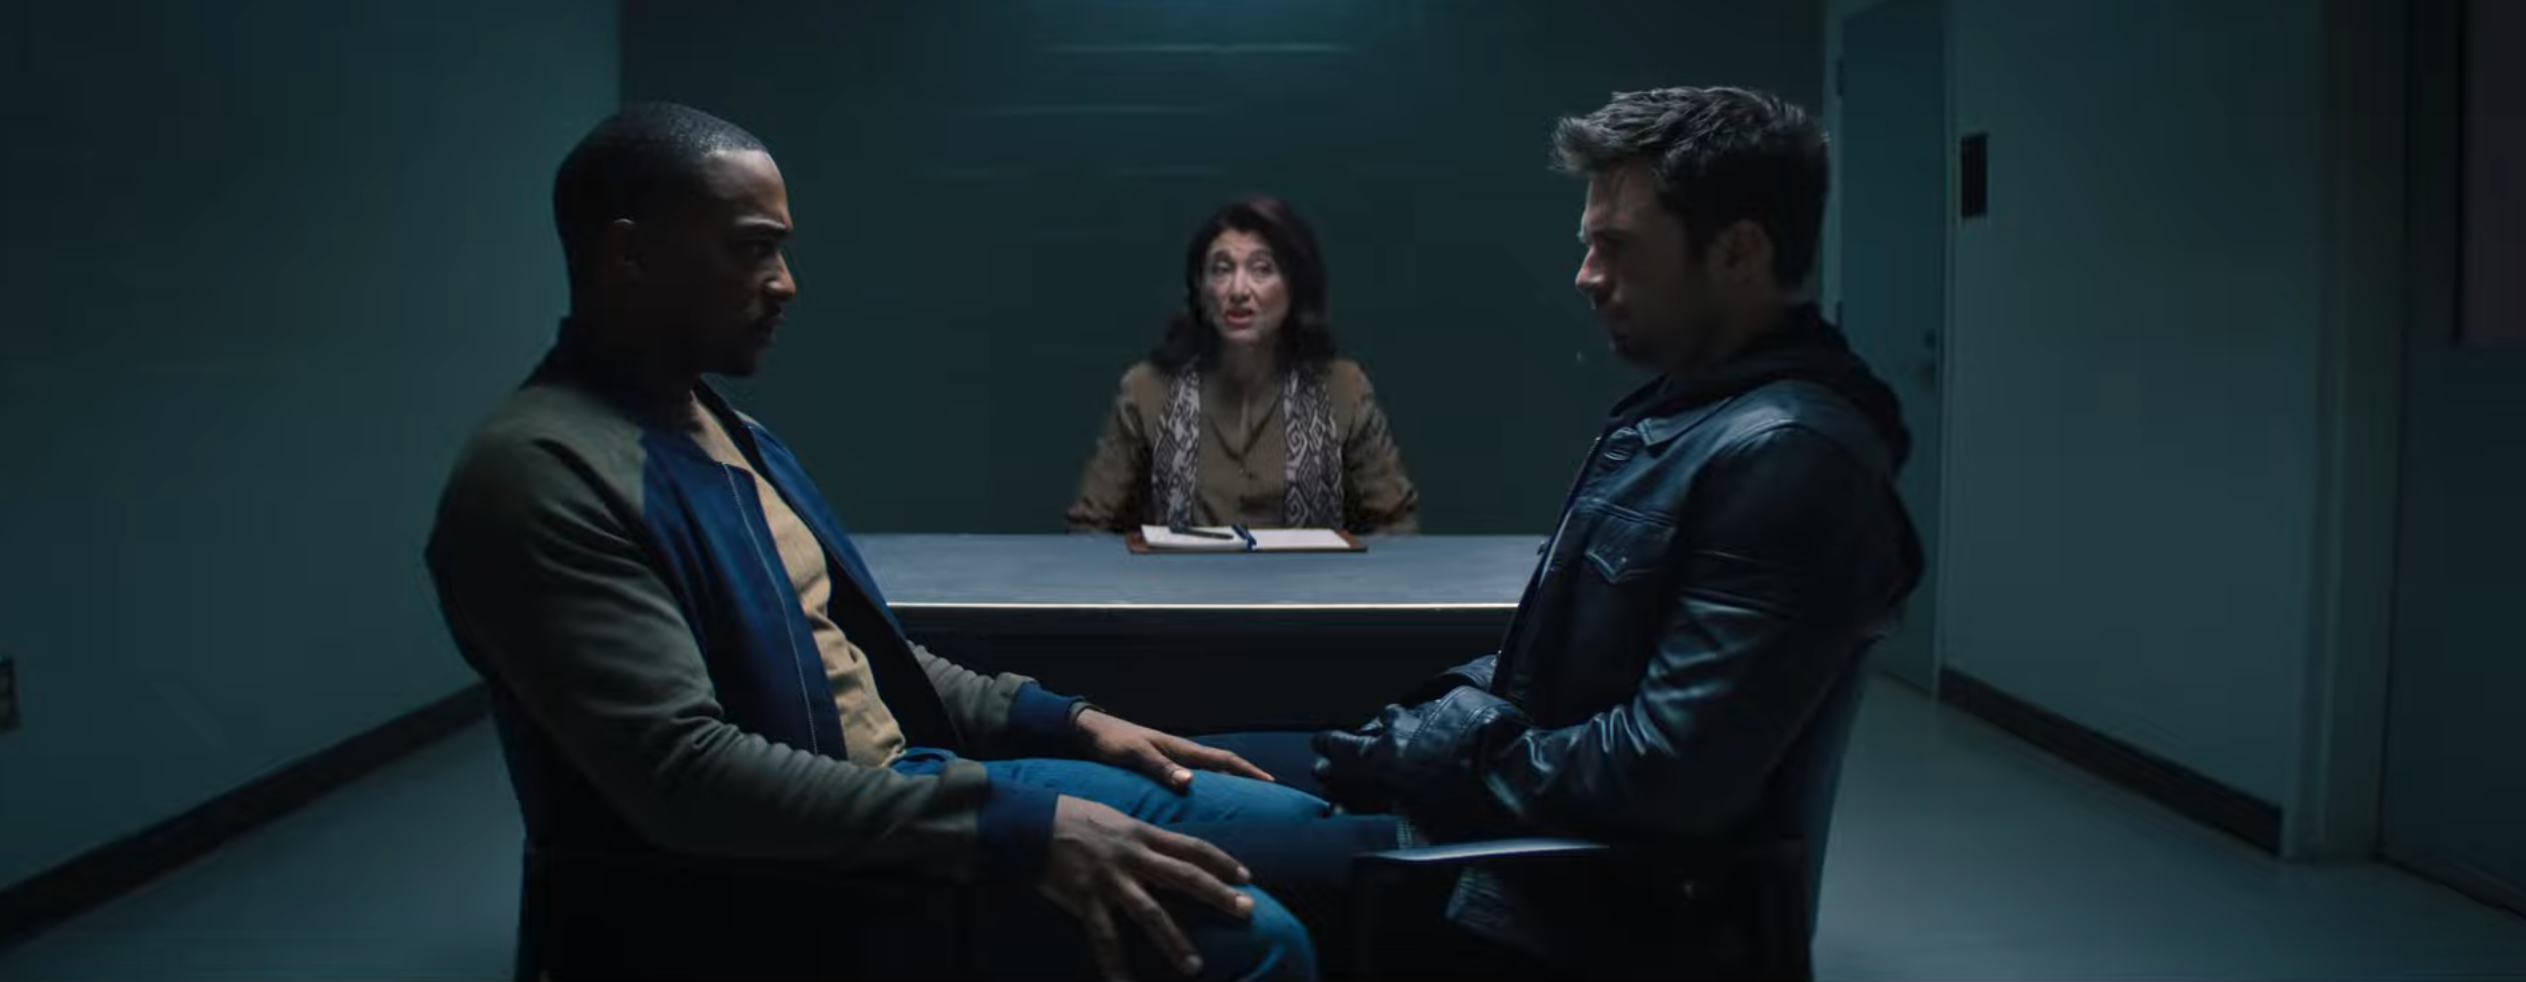 Sam and Bucky do couple's therapy in The Falcon and the Winter Soldier